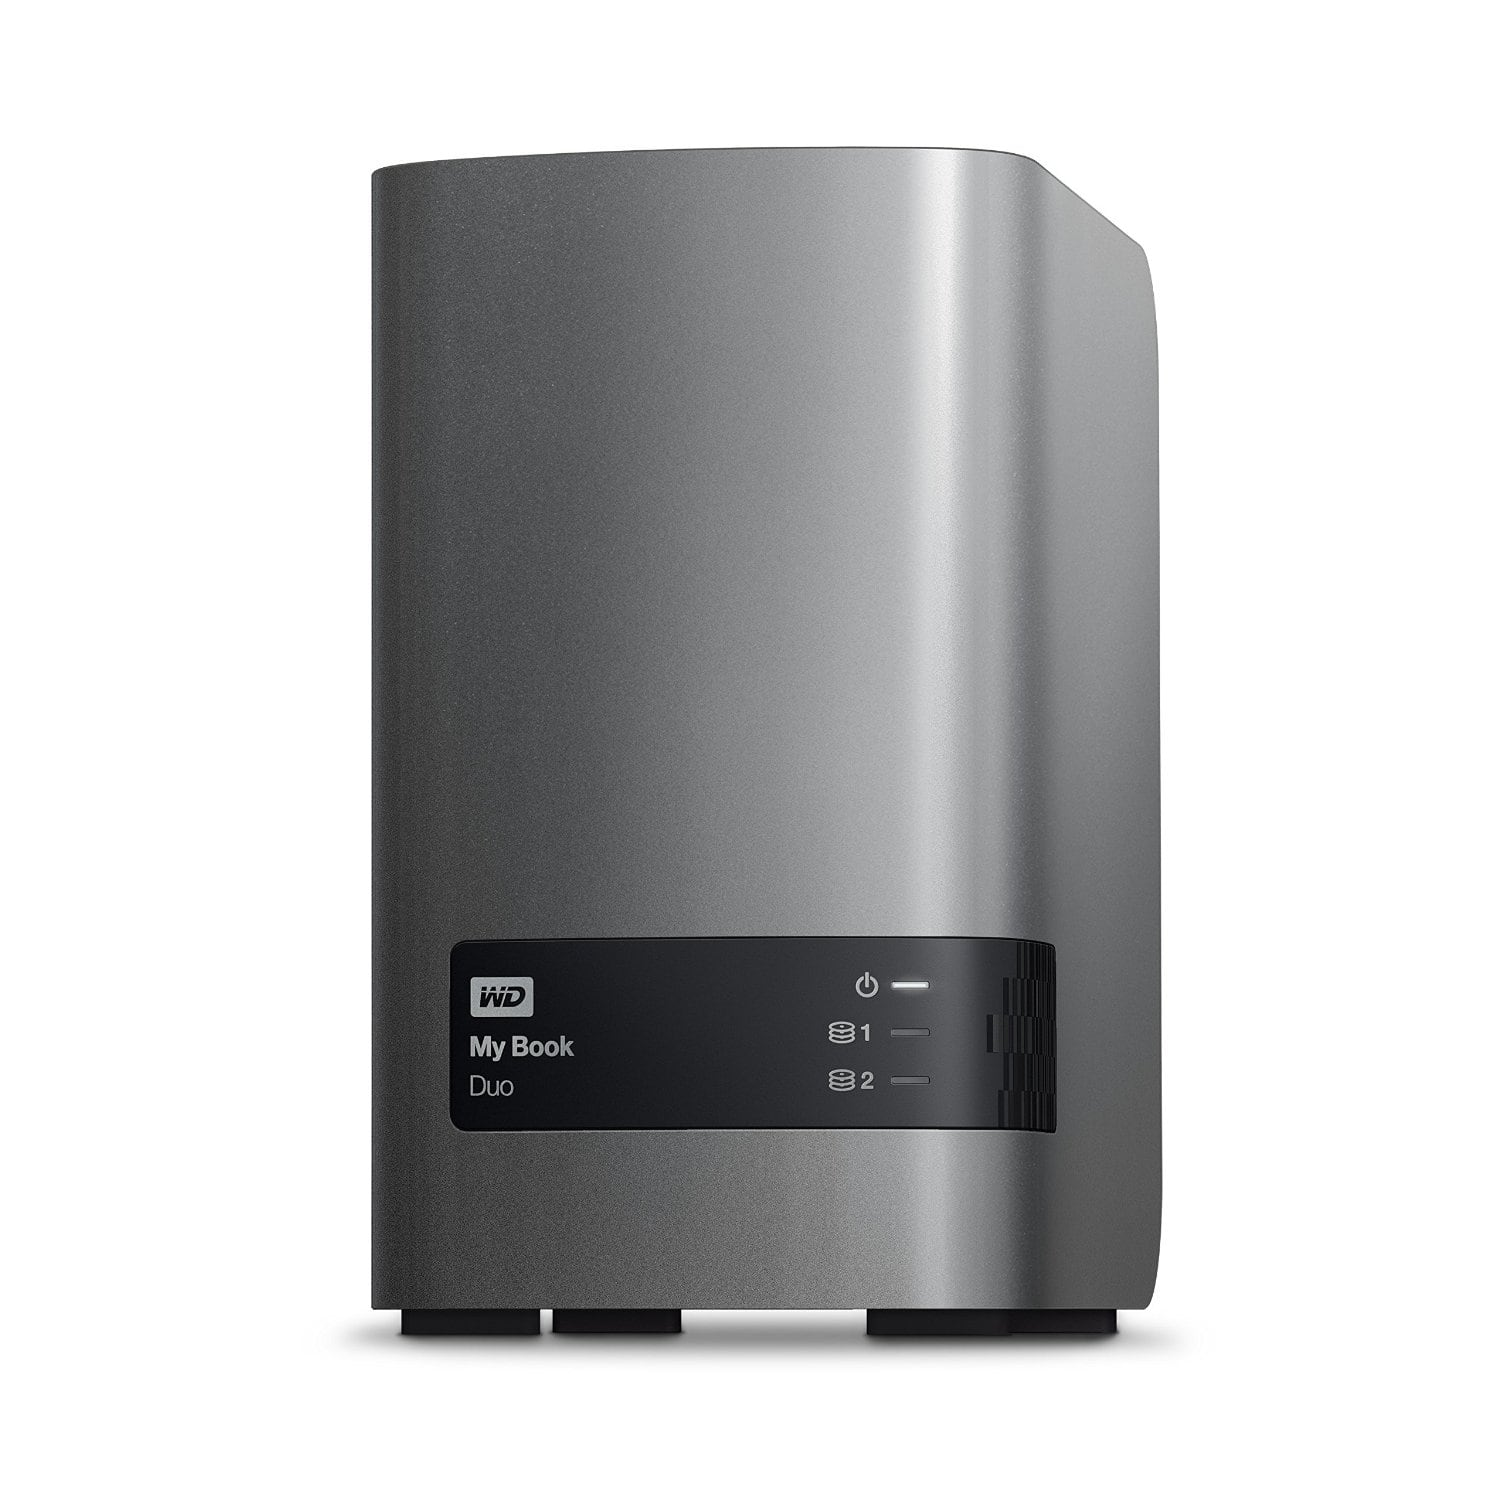 499.00 for two 8TB Western Digital WD80EFZX Red NAS drives in a hardware raid USB 3.0 enclosure